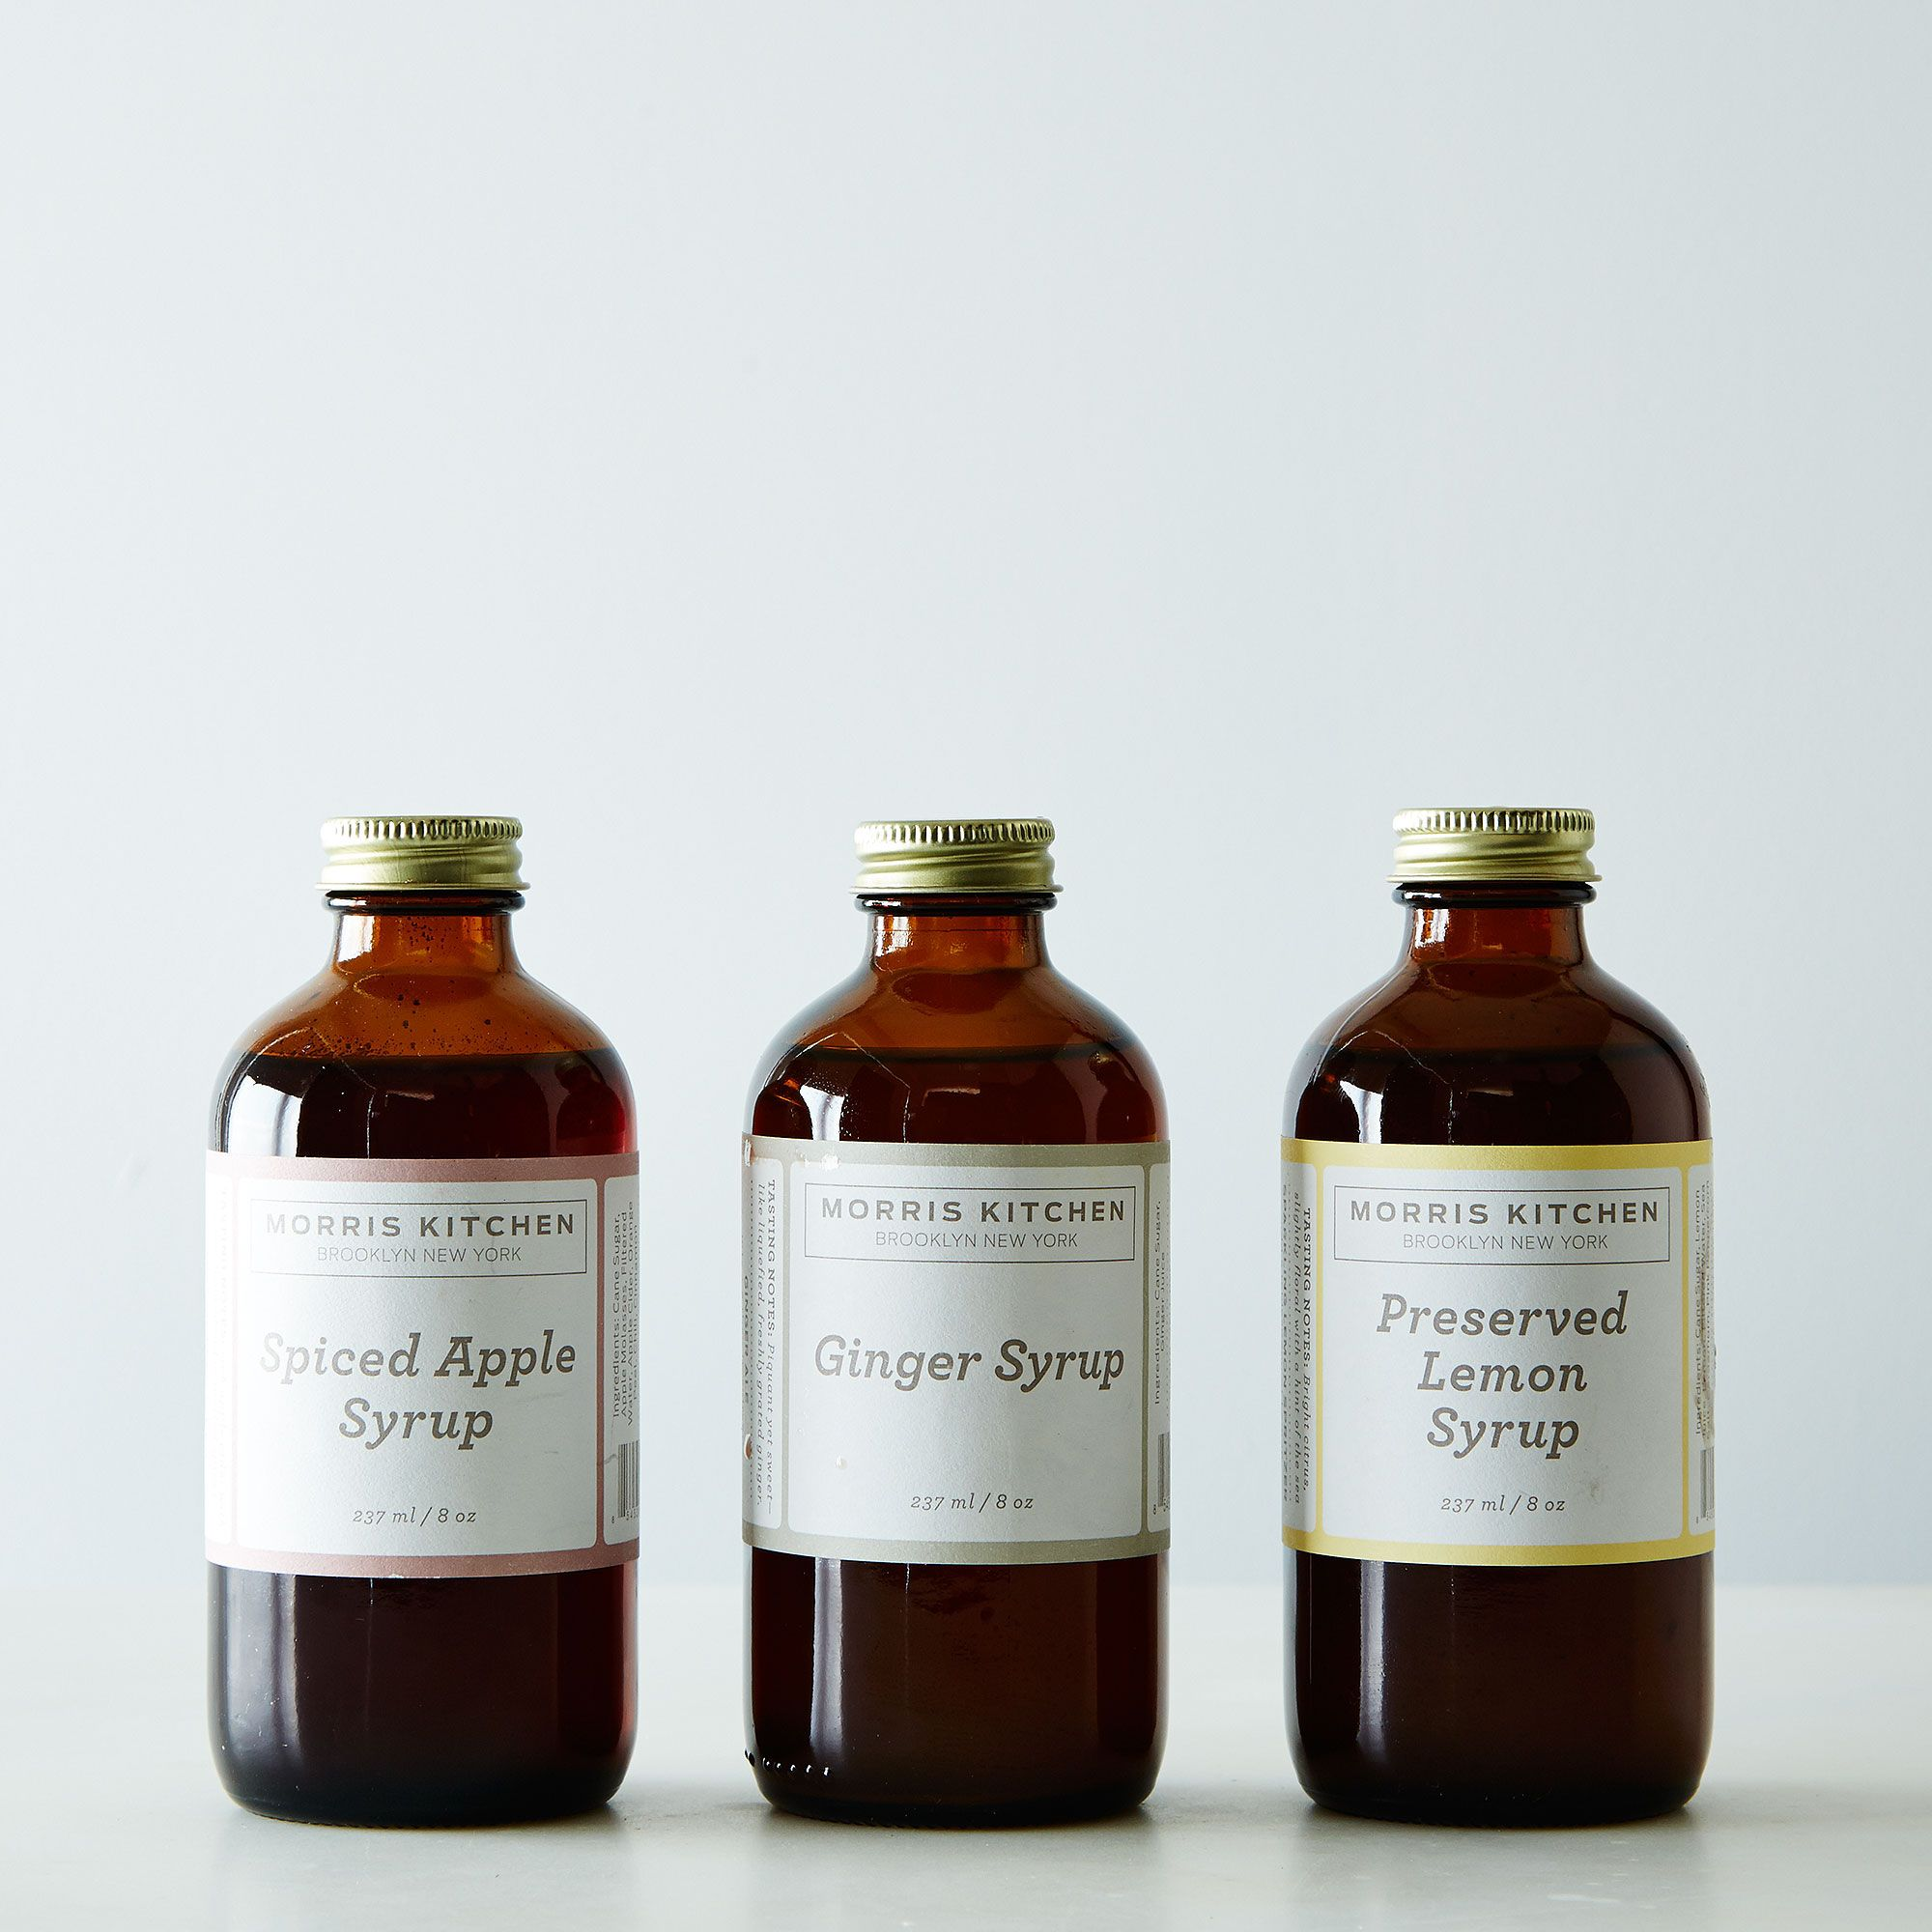 E7c68f98 06ae 4f42 b593 26407d5670f0  2014 1017 morris kitchen spiced apple preserved lemon ginger syrups 004